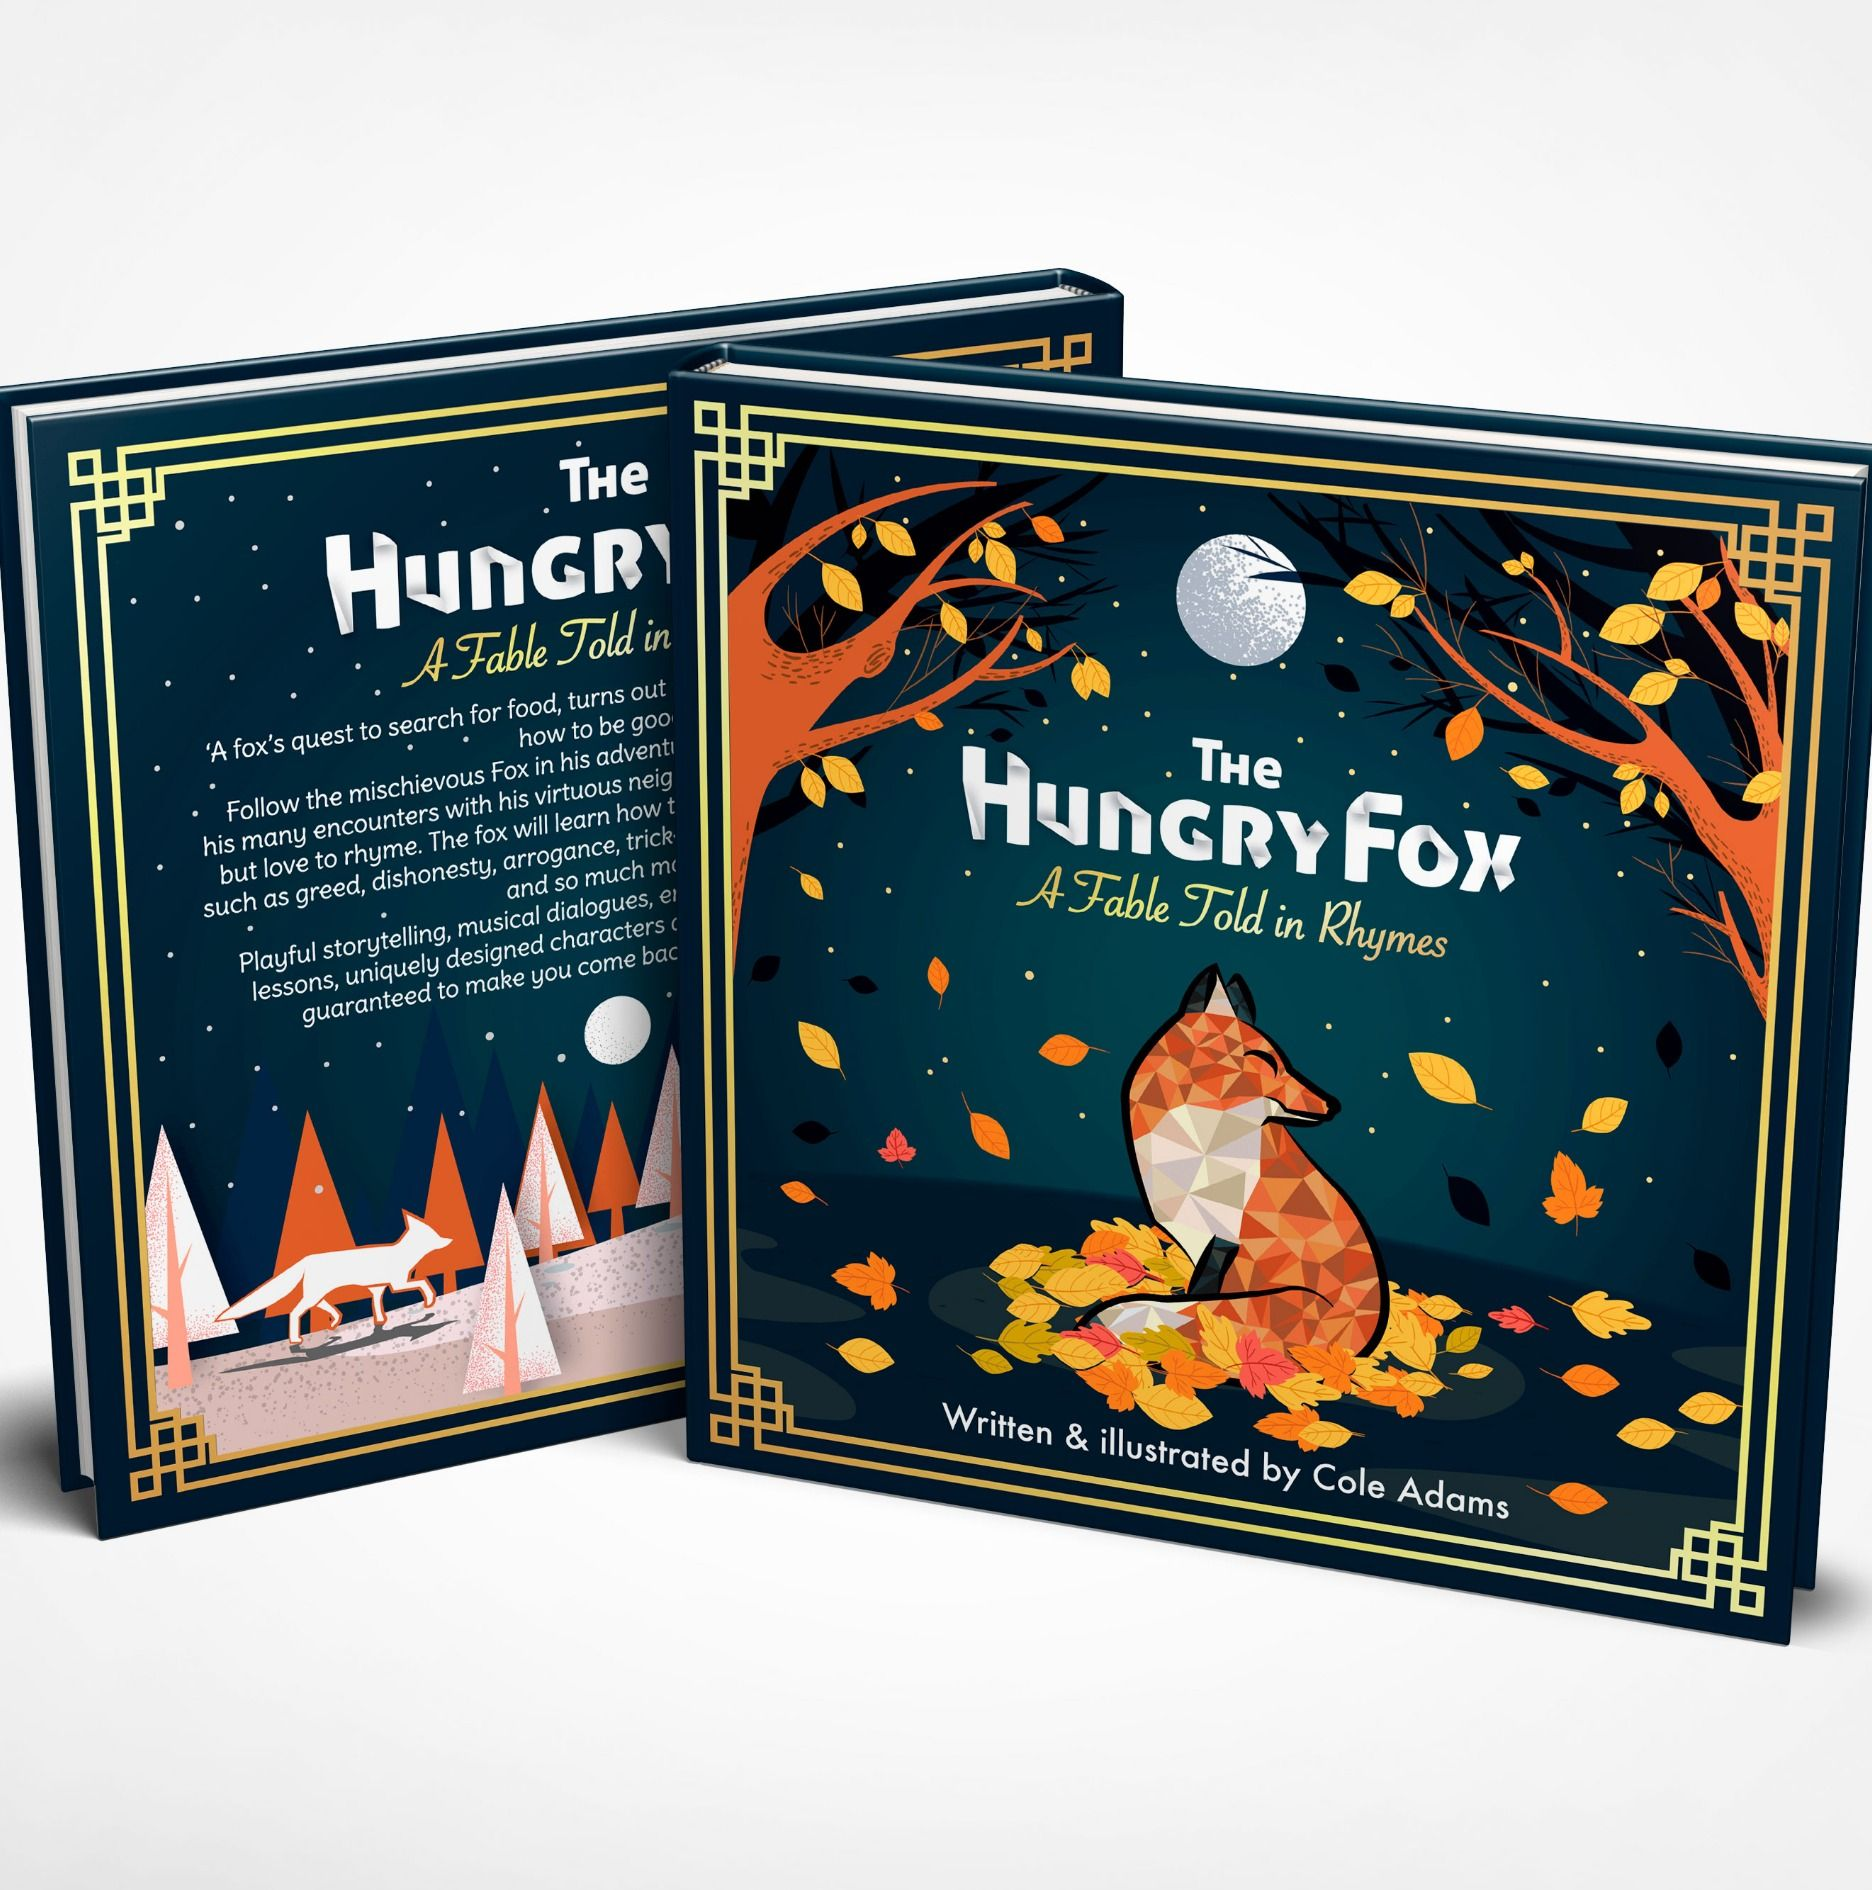 Good Bookcover Design: A Fox S Quest To Search For Food Turns Out To Be A Life